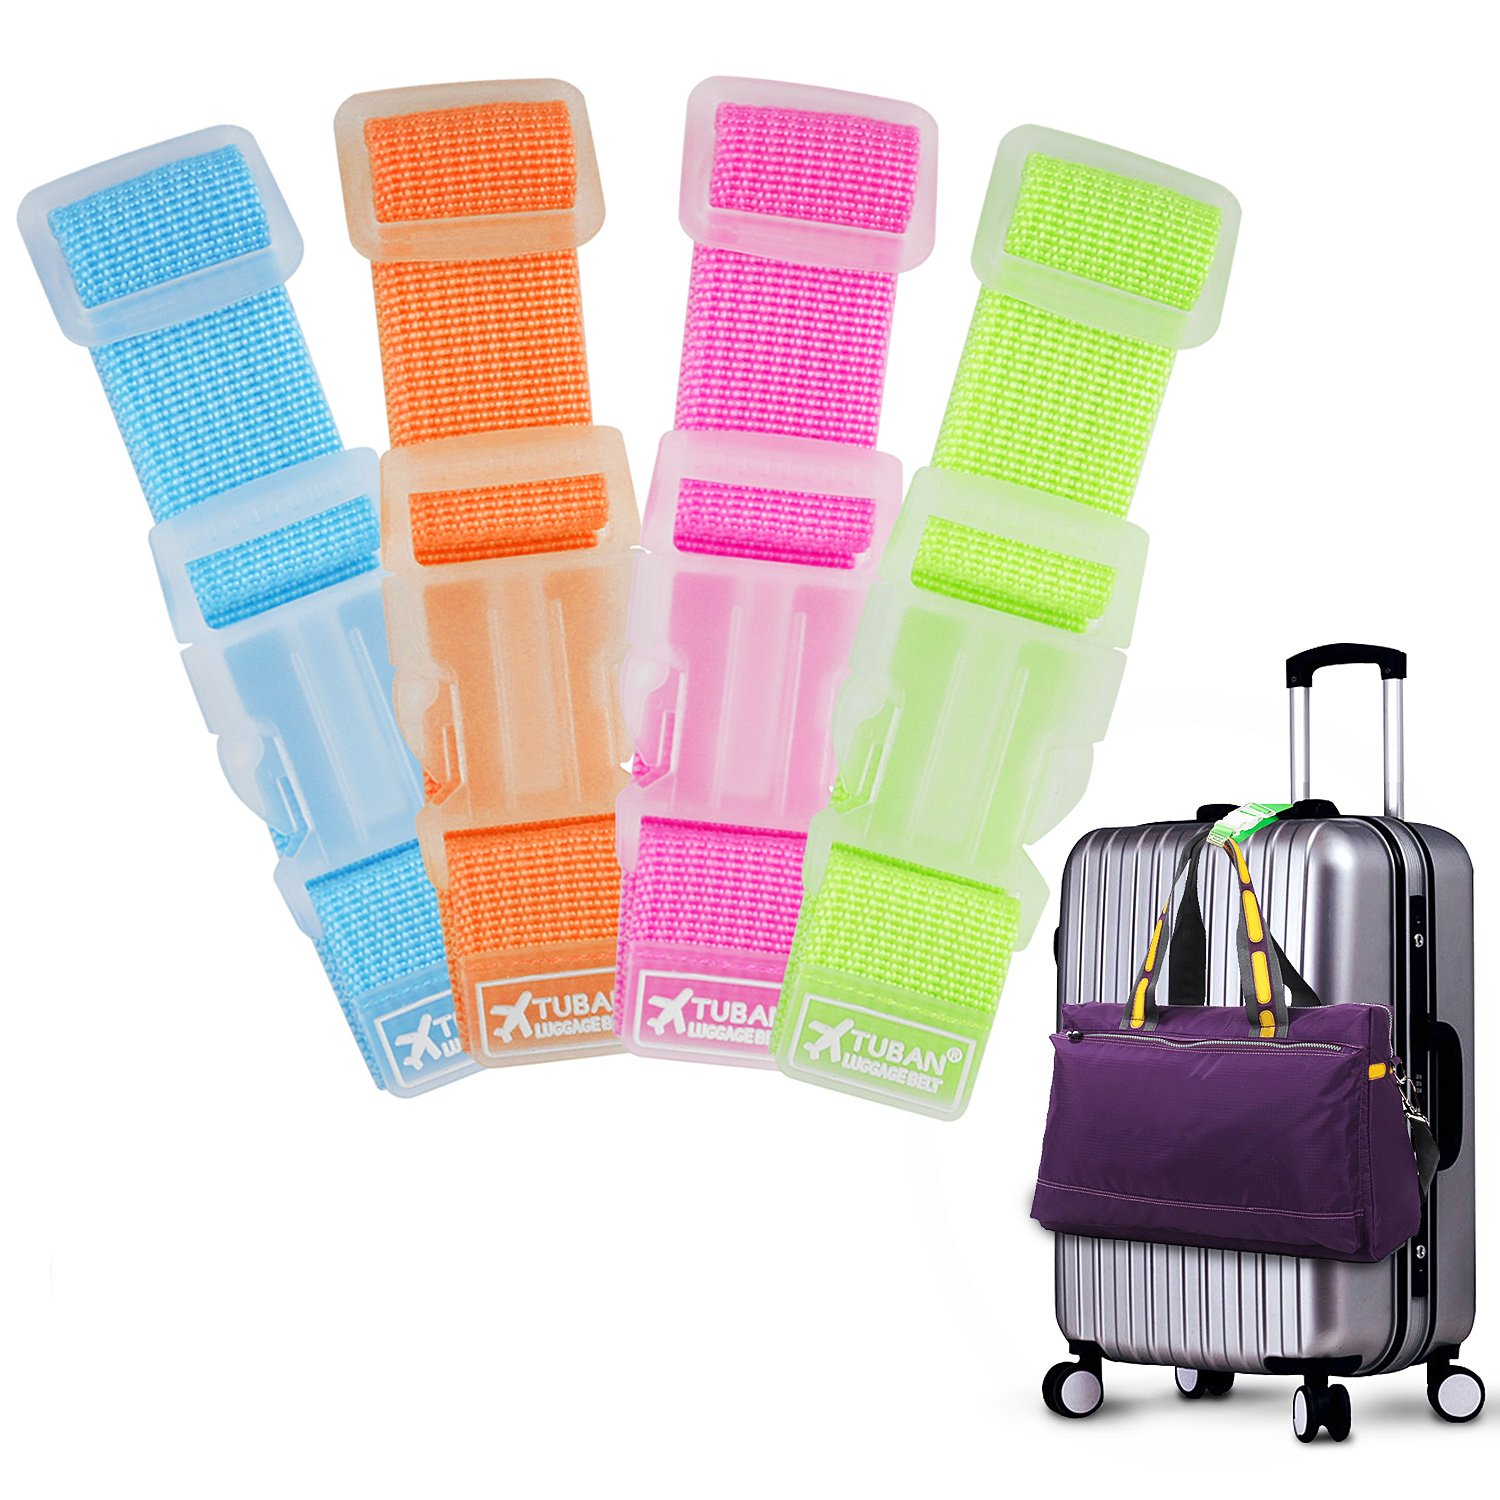 4 Pcs Travel Add a Luggage Straps Hands Free Suitcase Belt for Connect Bags Together